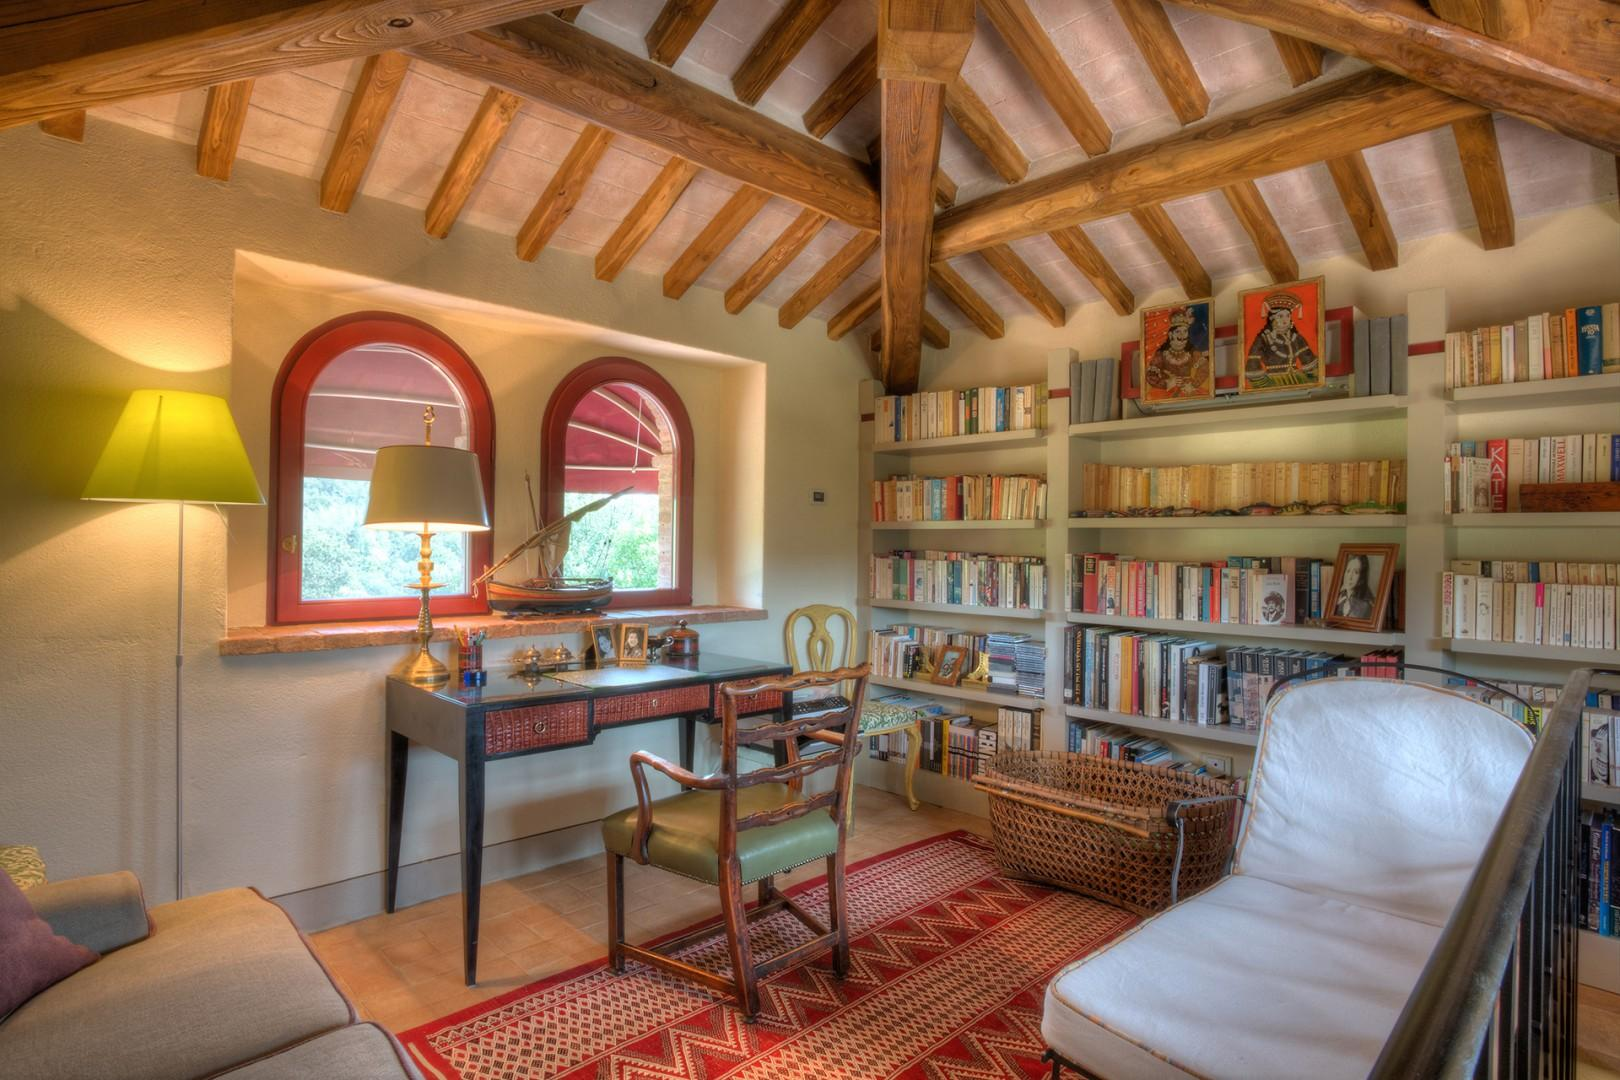 Top floor study under the eaves has lovely views through the two arched windows.